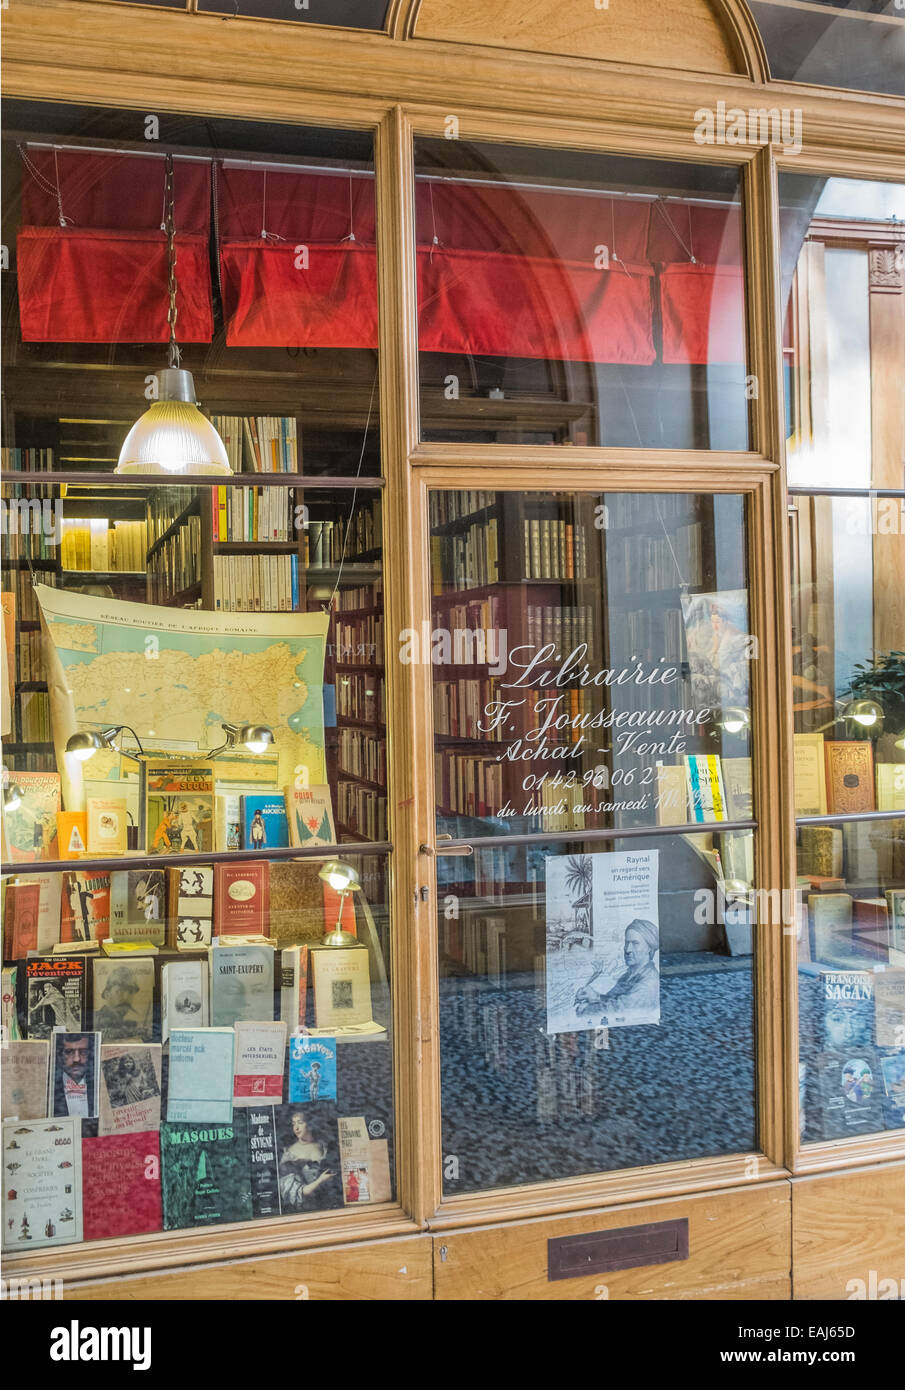 shop window of the antiquarian bookseller librairie jousseaume in the historic indoor shopping mall galerie vivienne, - Stock Image